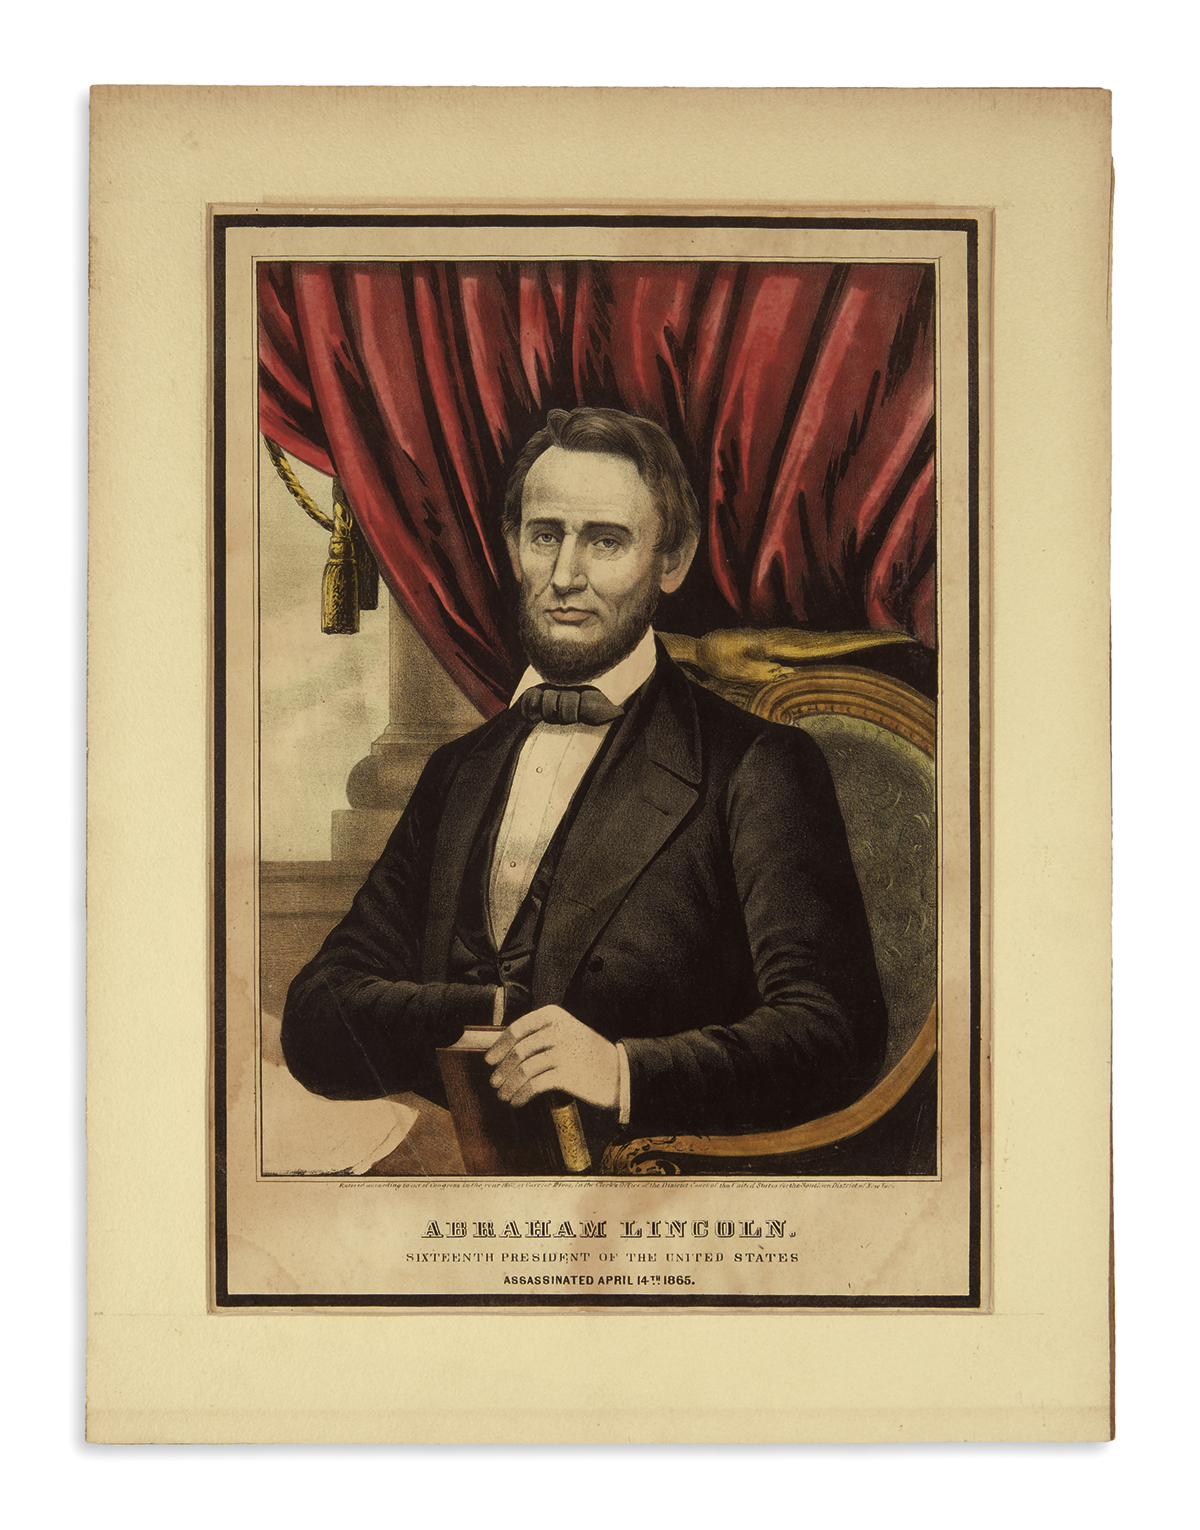 (PRINTS--MEMORIAL)-Group-of-14-prints-issued-after-Lincolns-